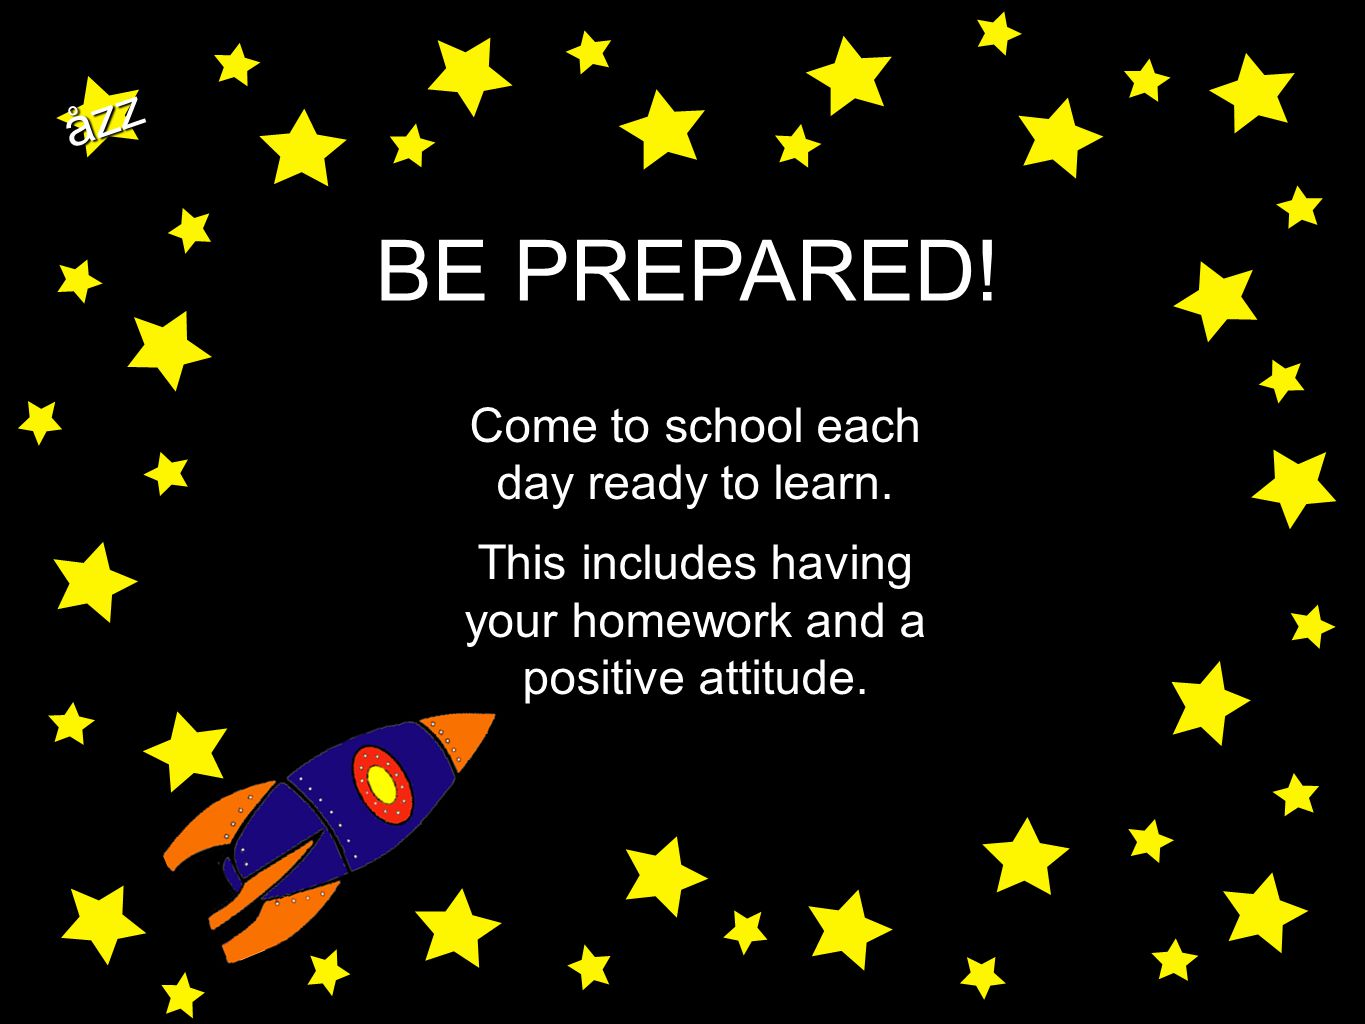 åzz BE PREPARED! Come to school each day ready to learn. This includes having your homework and a positive attitude.